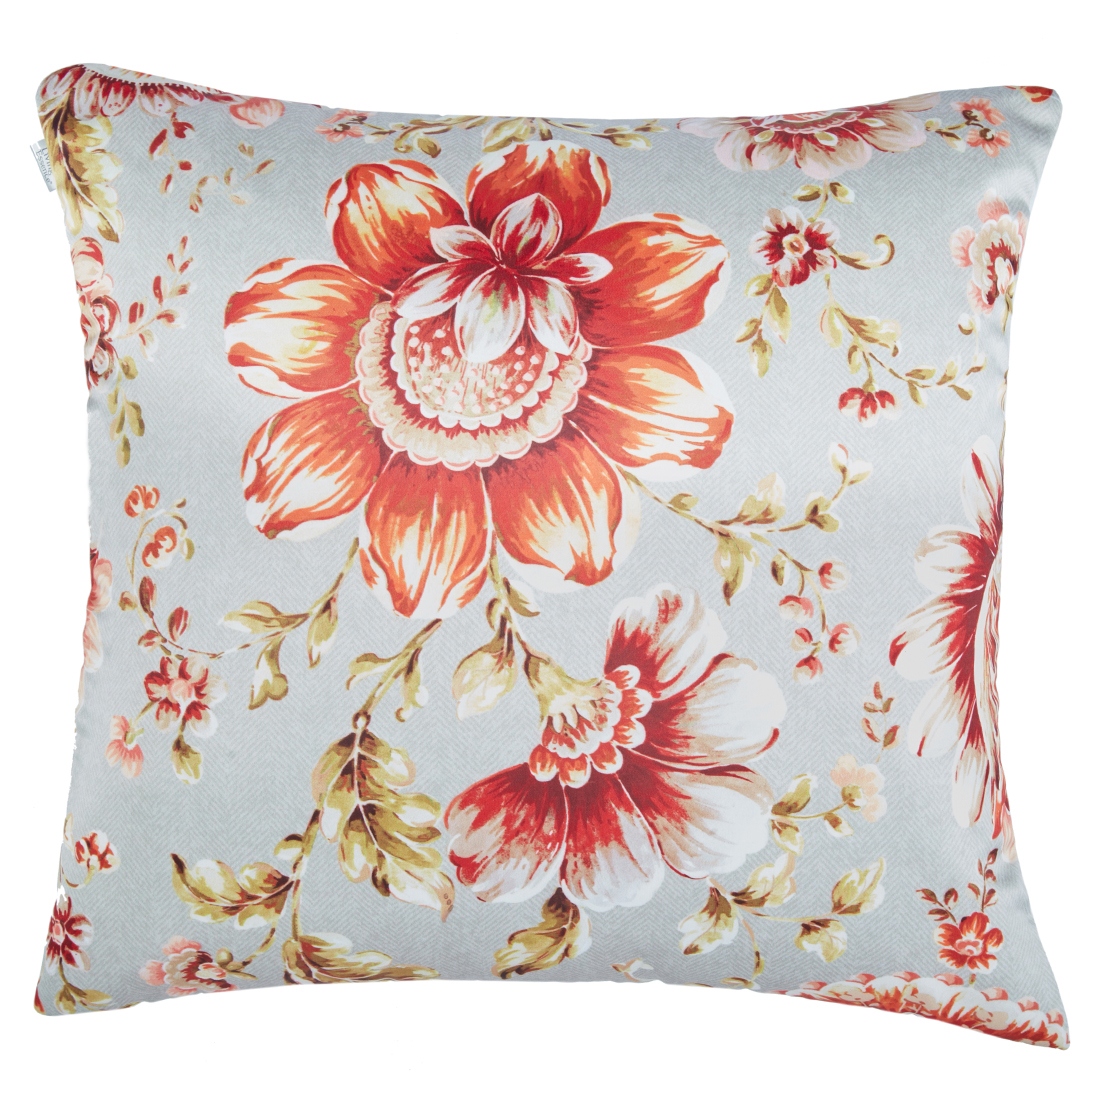 Digital Cushion Cover Jacobean Cushion Covers in Poly Satin Colour by Living Essence